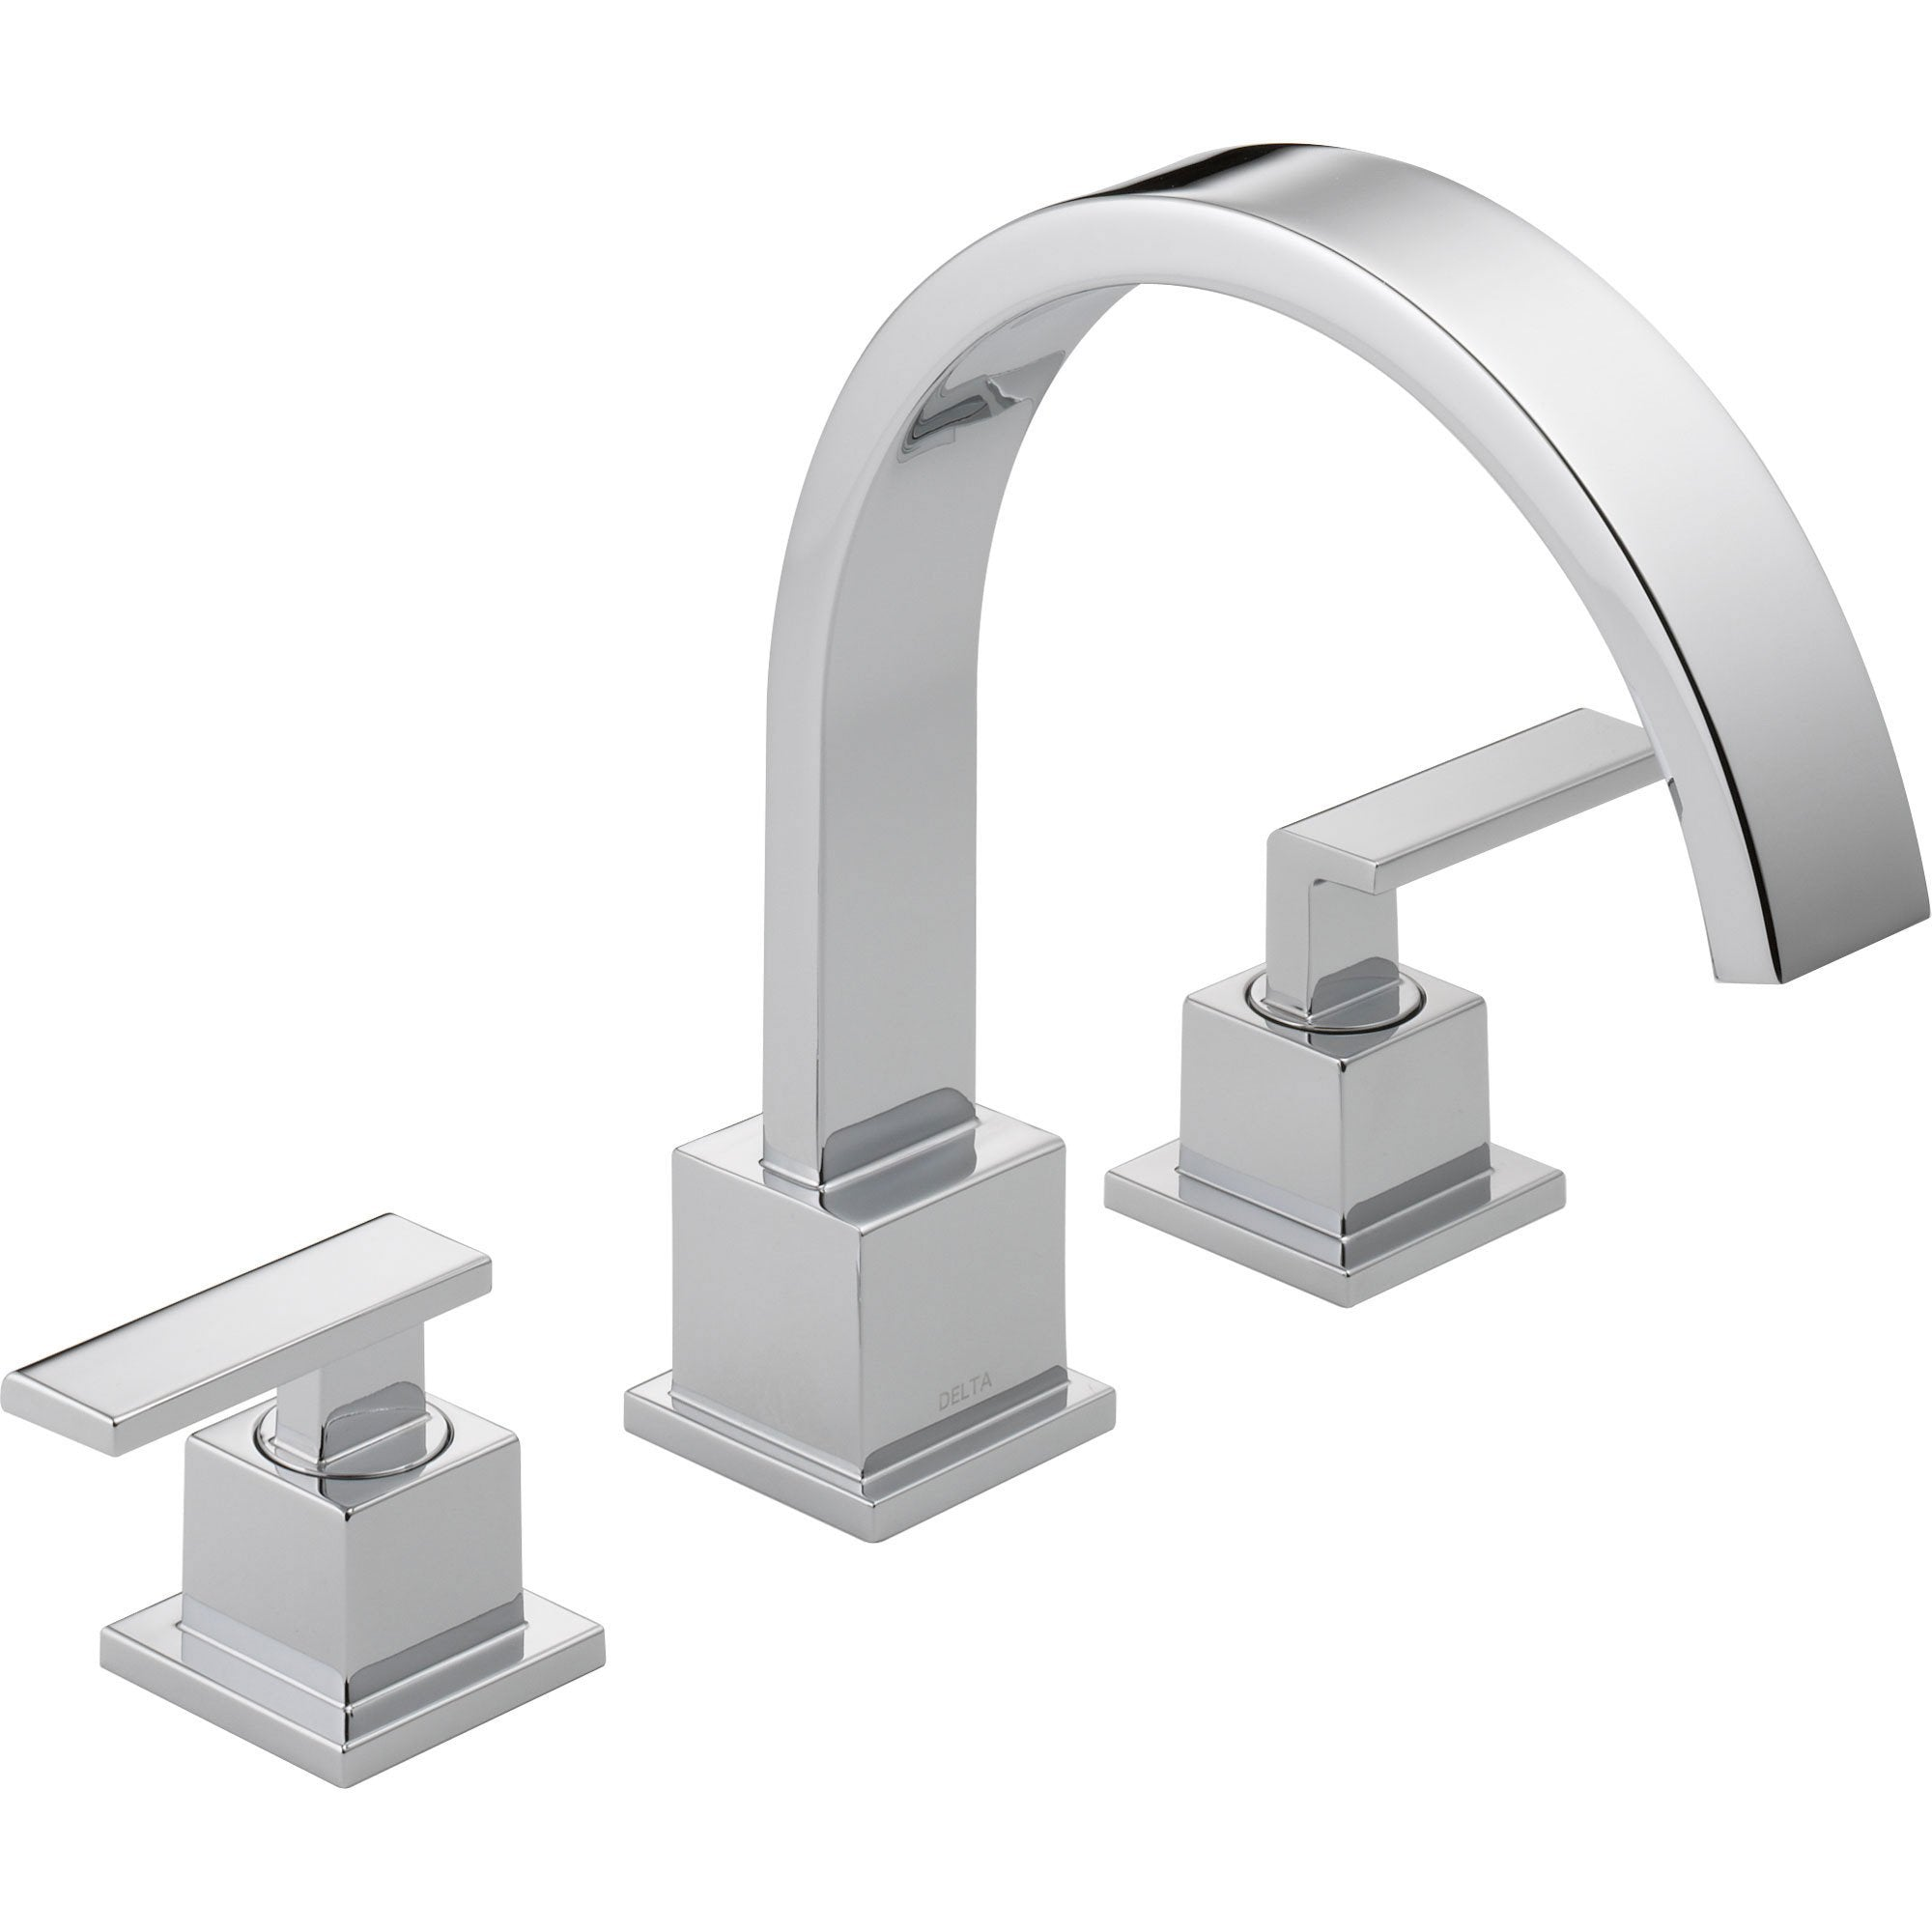 Delta Vero Modern Chrome 2-Handle Roman Tub Filler Faucet Trim Kit 521906